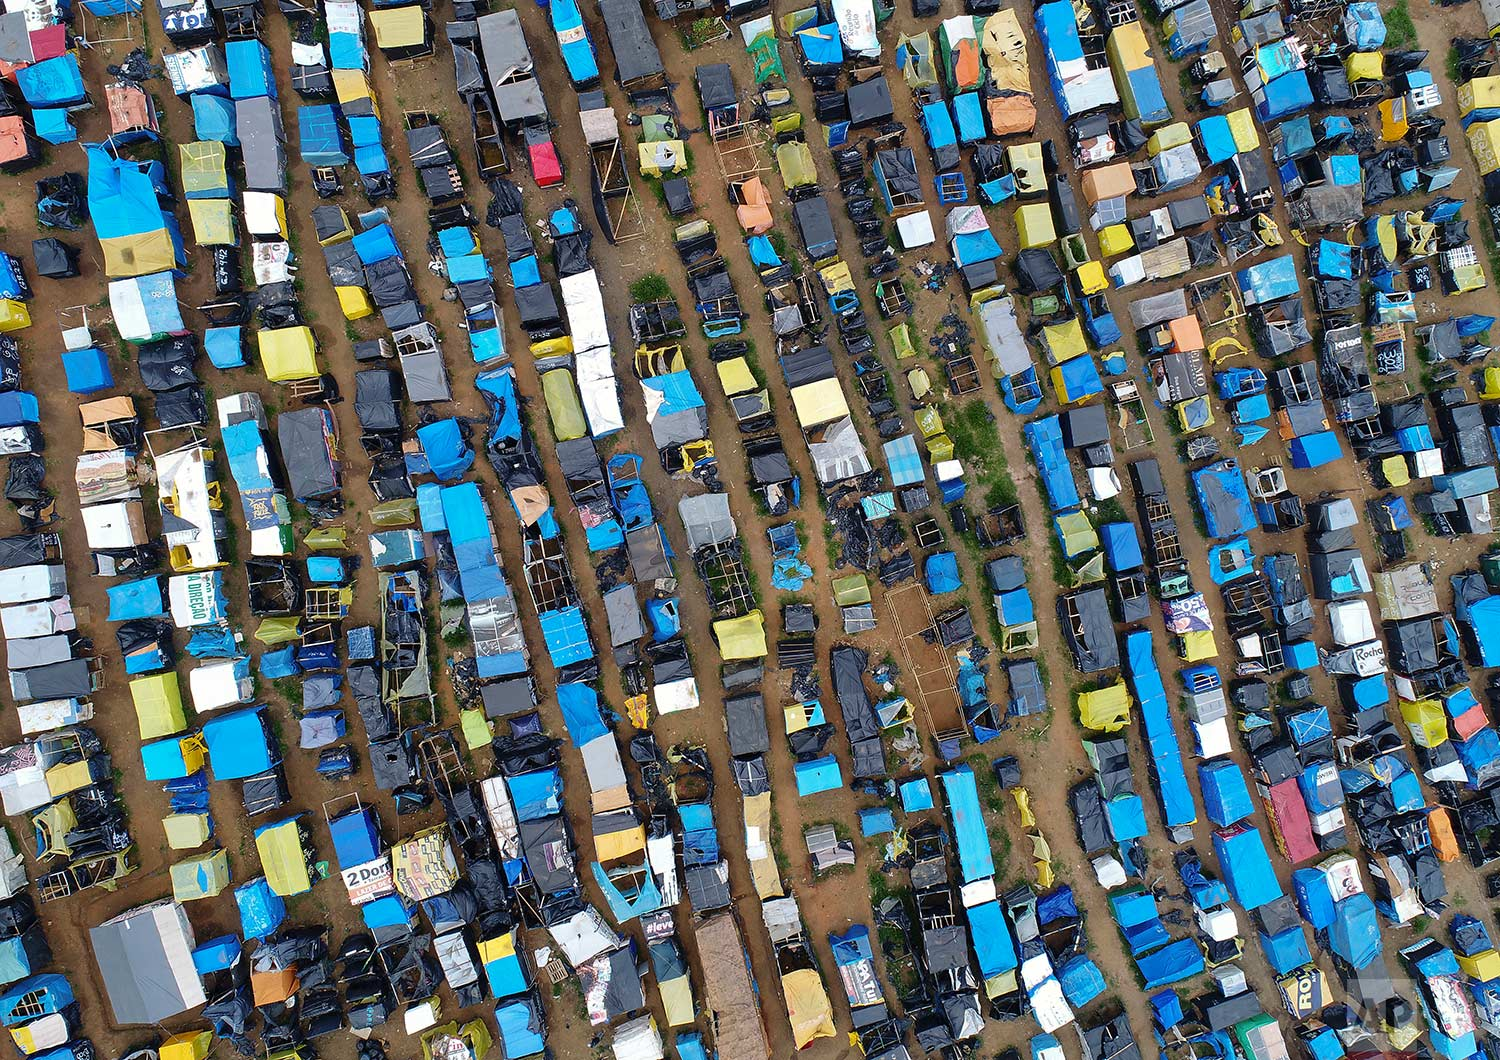 """In this Tuesday, Dec. 12, 2017 photo, lines of improvised homes create the squatter community coined """"Povo Sem Medo,"""" or Fearless People, in Sao Bernardo do Campo, a suburb of Sao Paulo, Brazil. (AP Photo/Andre Penner)"""